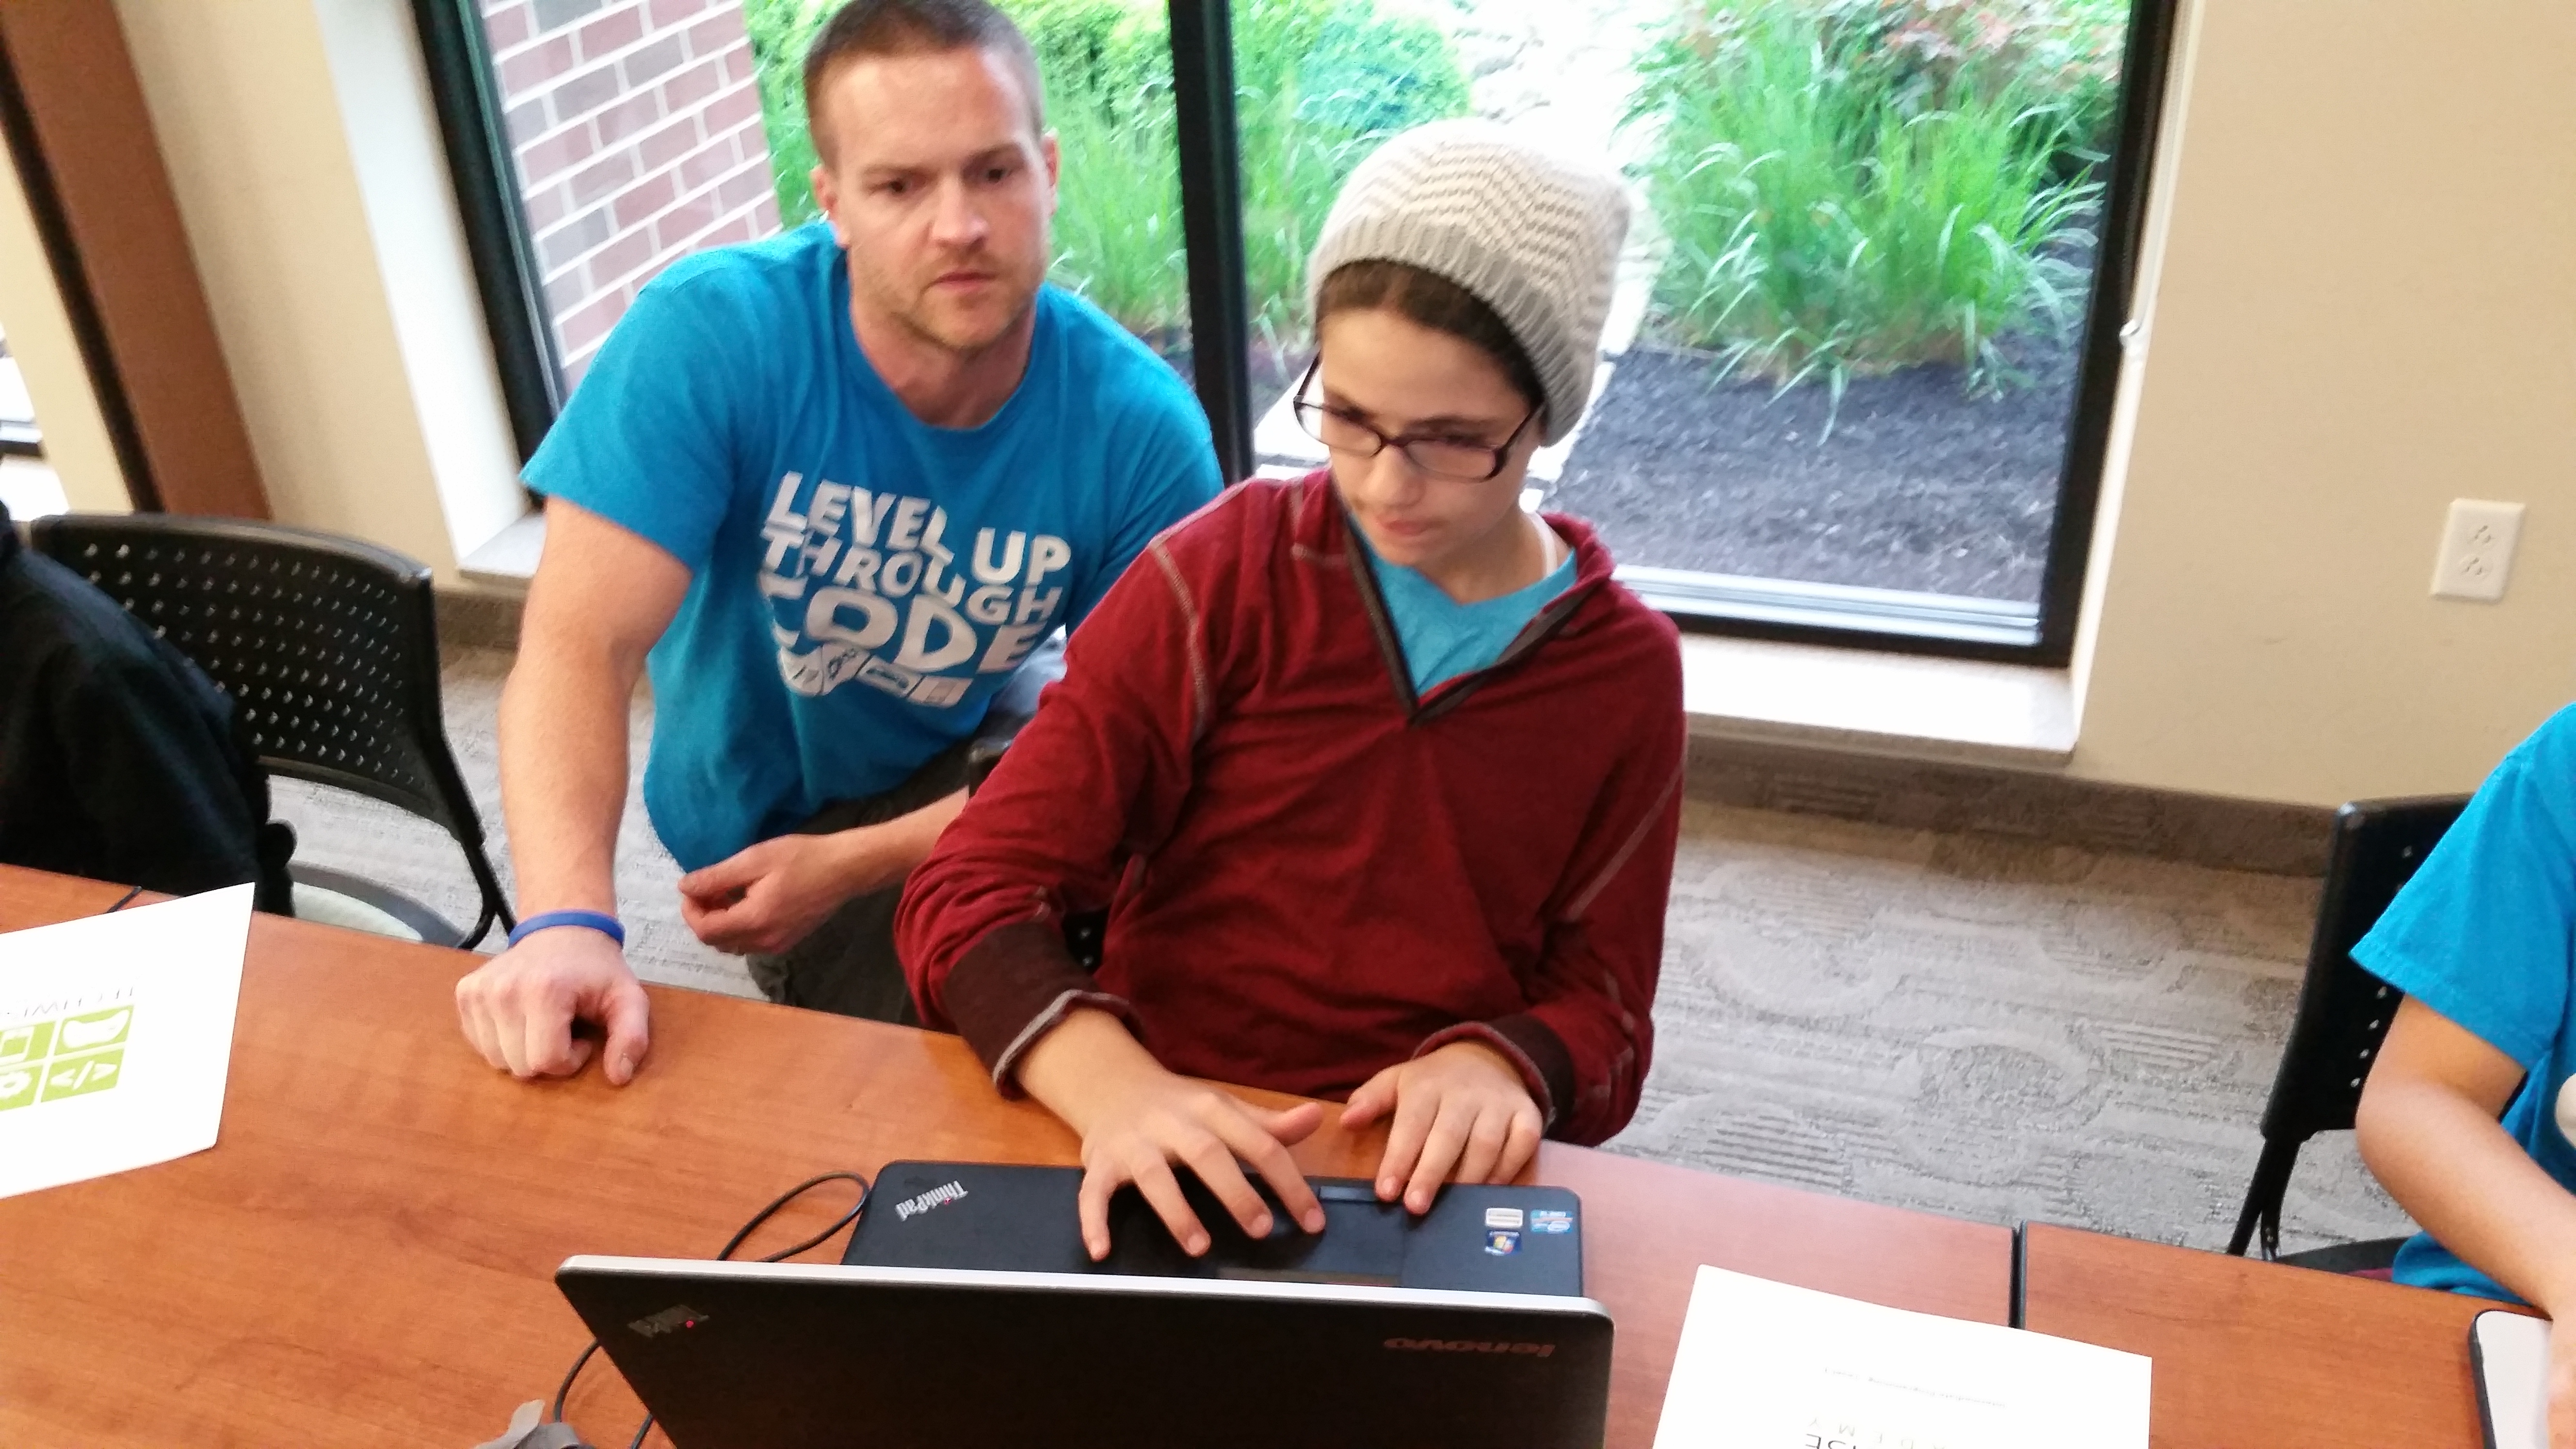 Student and TechWise Academy instructor reviewing code